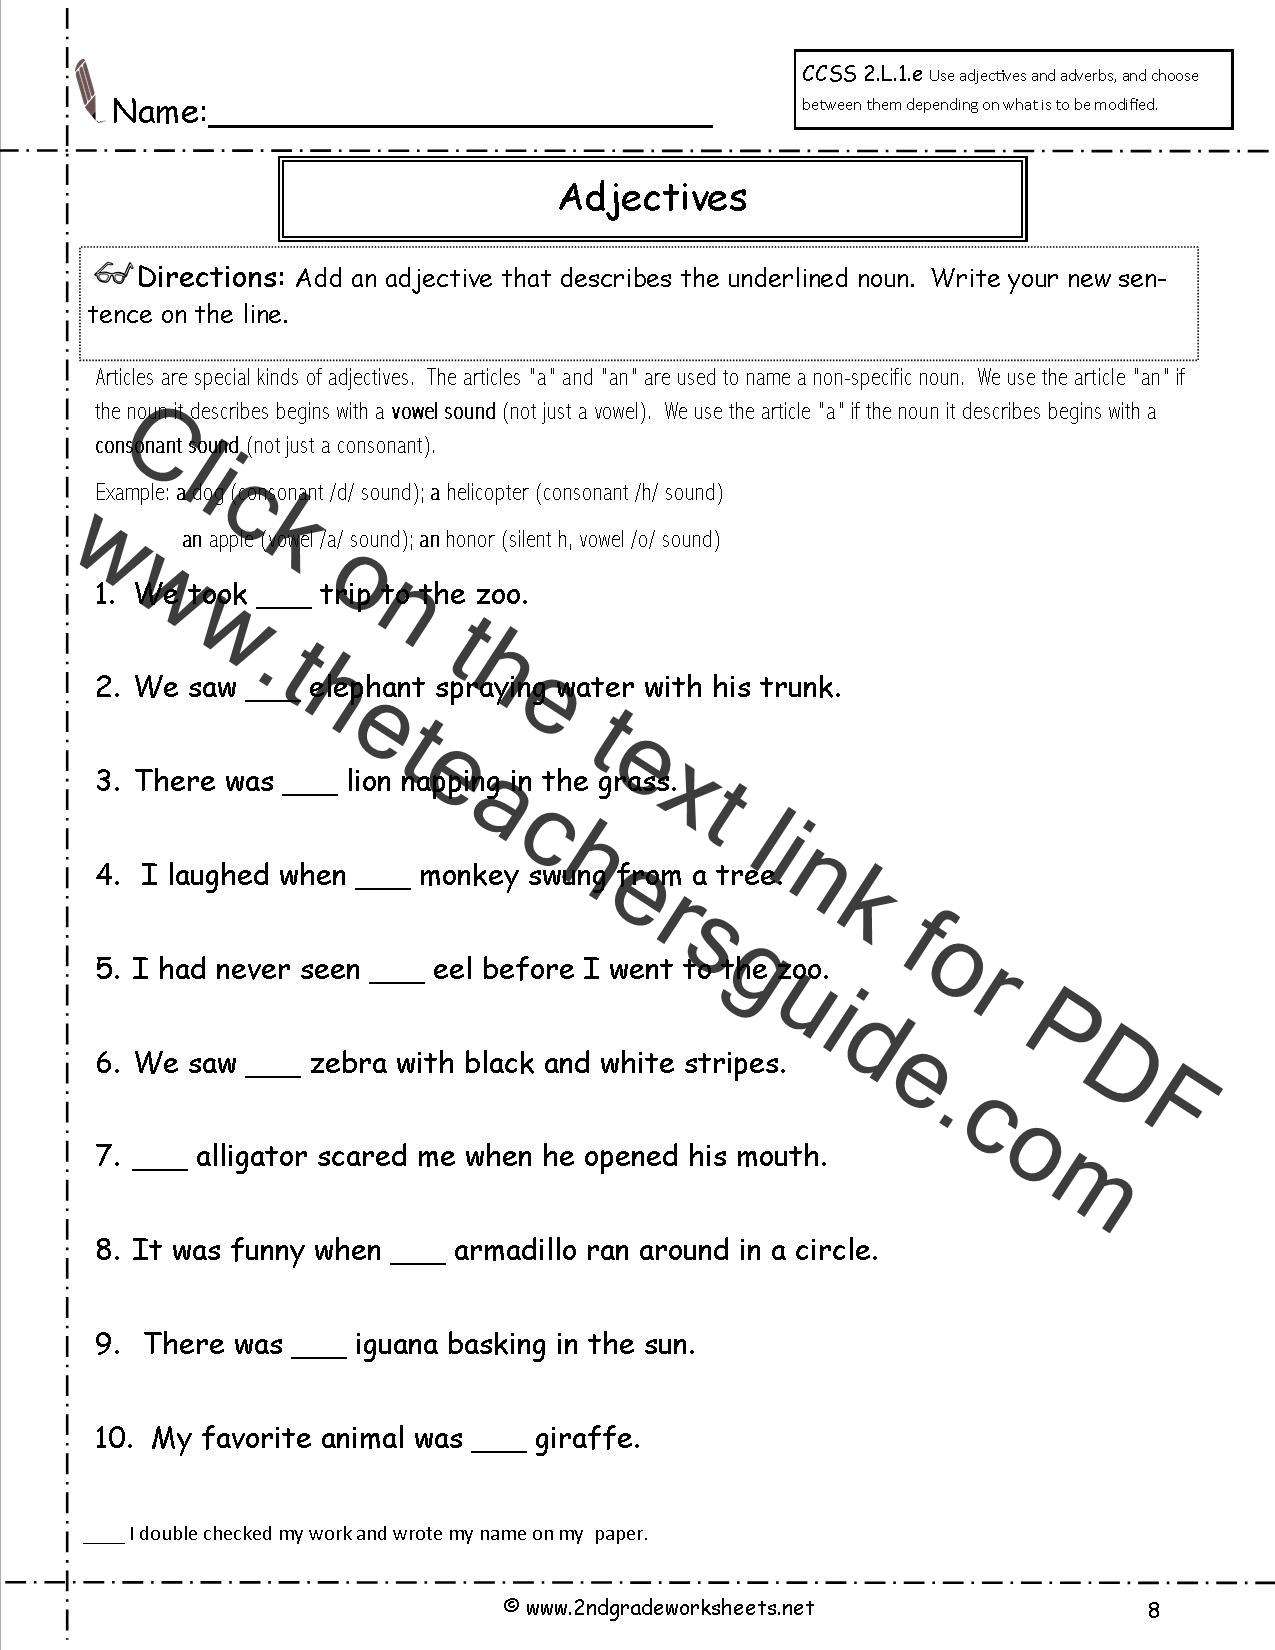 Free LanguageGrammar Worksheets and Printouts – Language Worksheets